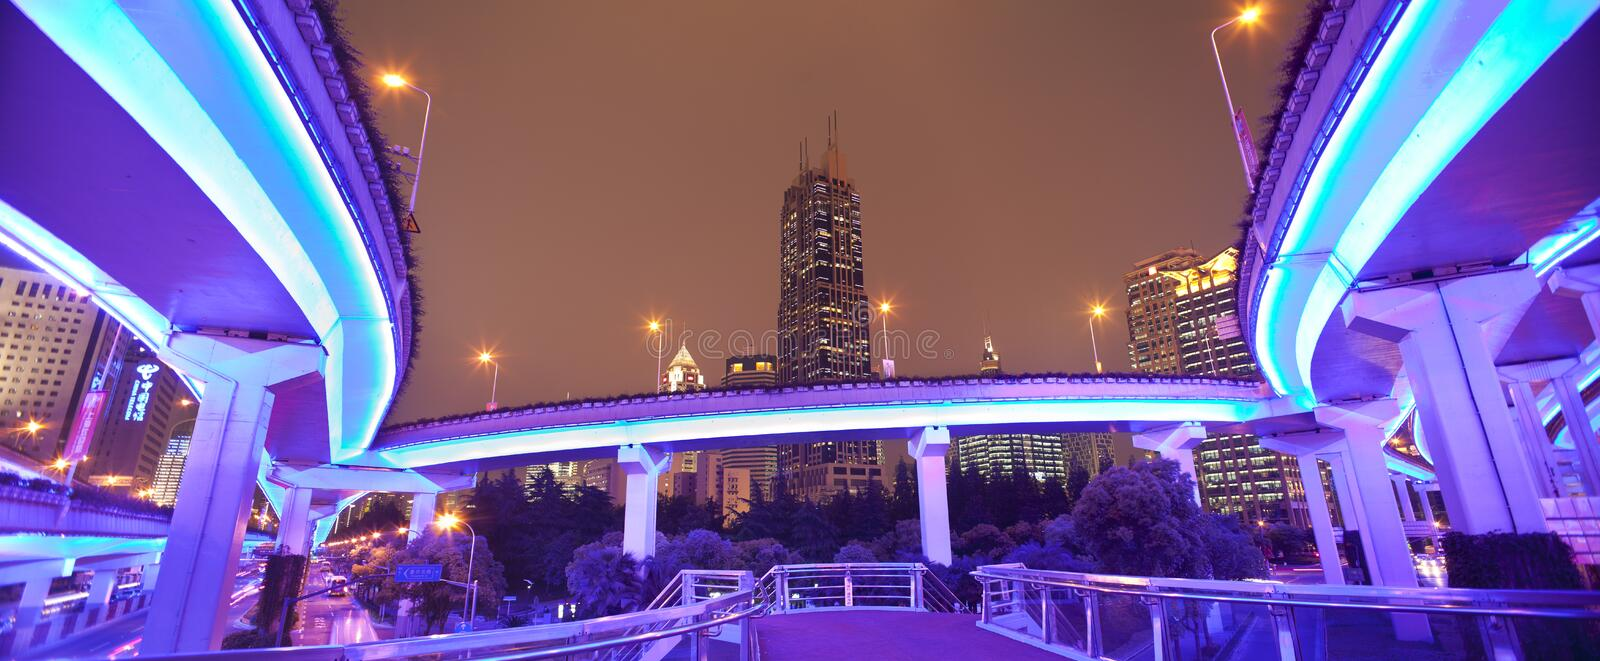 Mega city Shanghai. Shanghai/China: Mega city Shanghai, traffic and pedestrian bridges at night stock photography